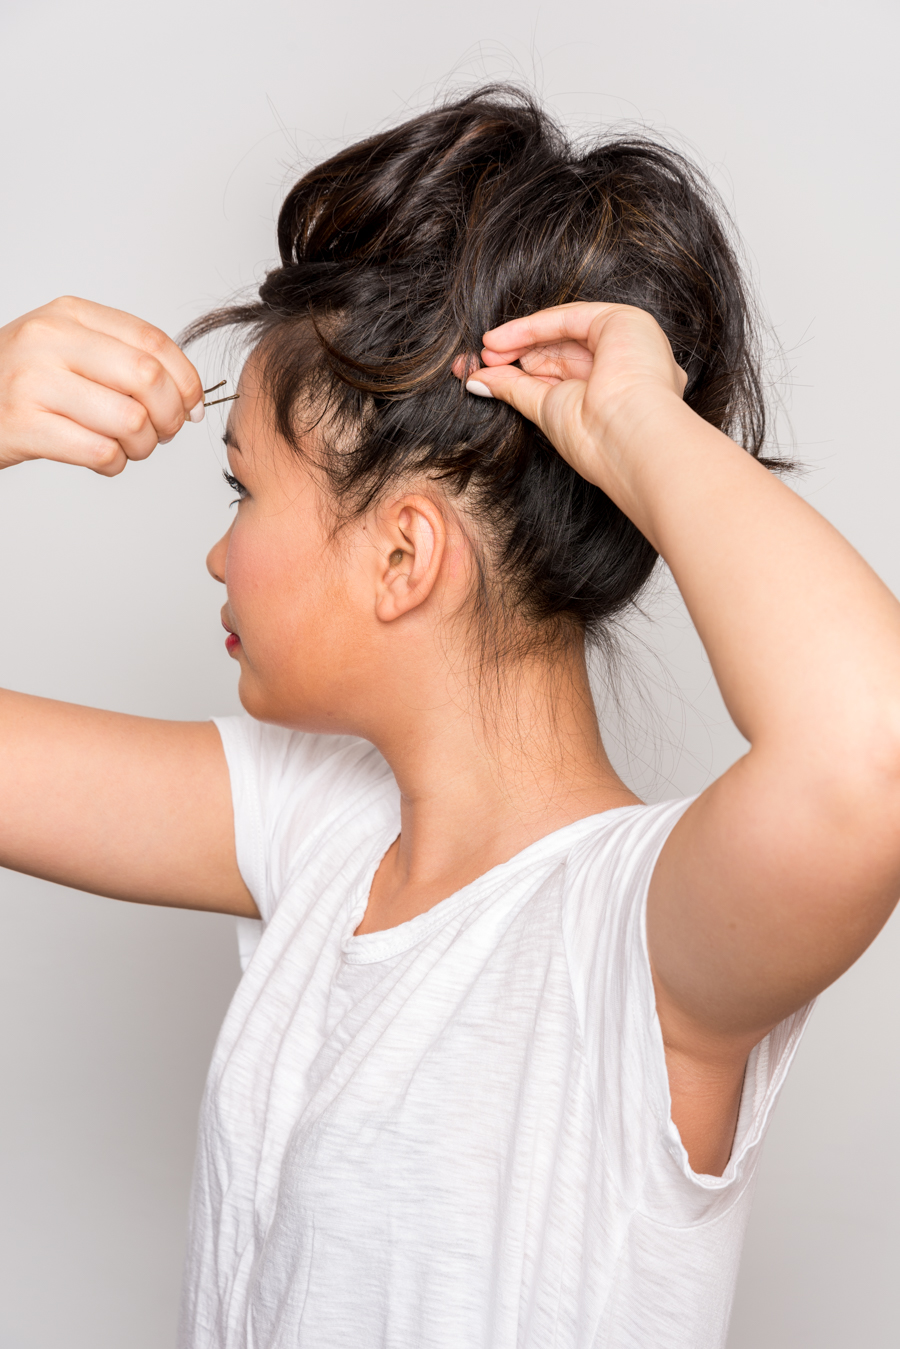 ROCK MAMA NYC LIFESTYLE BLOG-  HOW TO USE A DONUT BUN